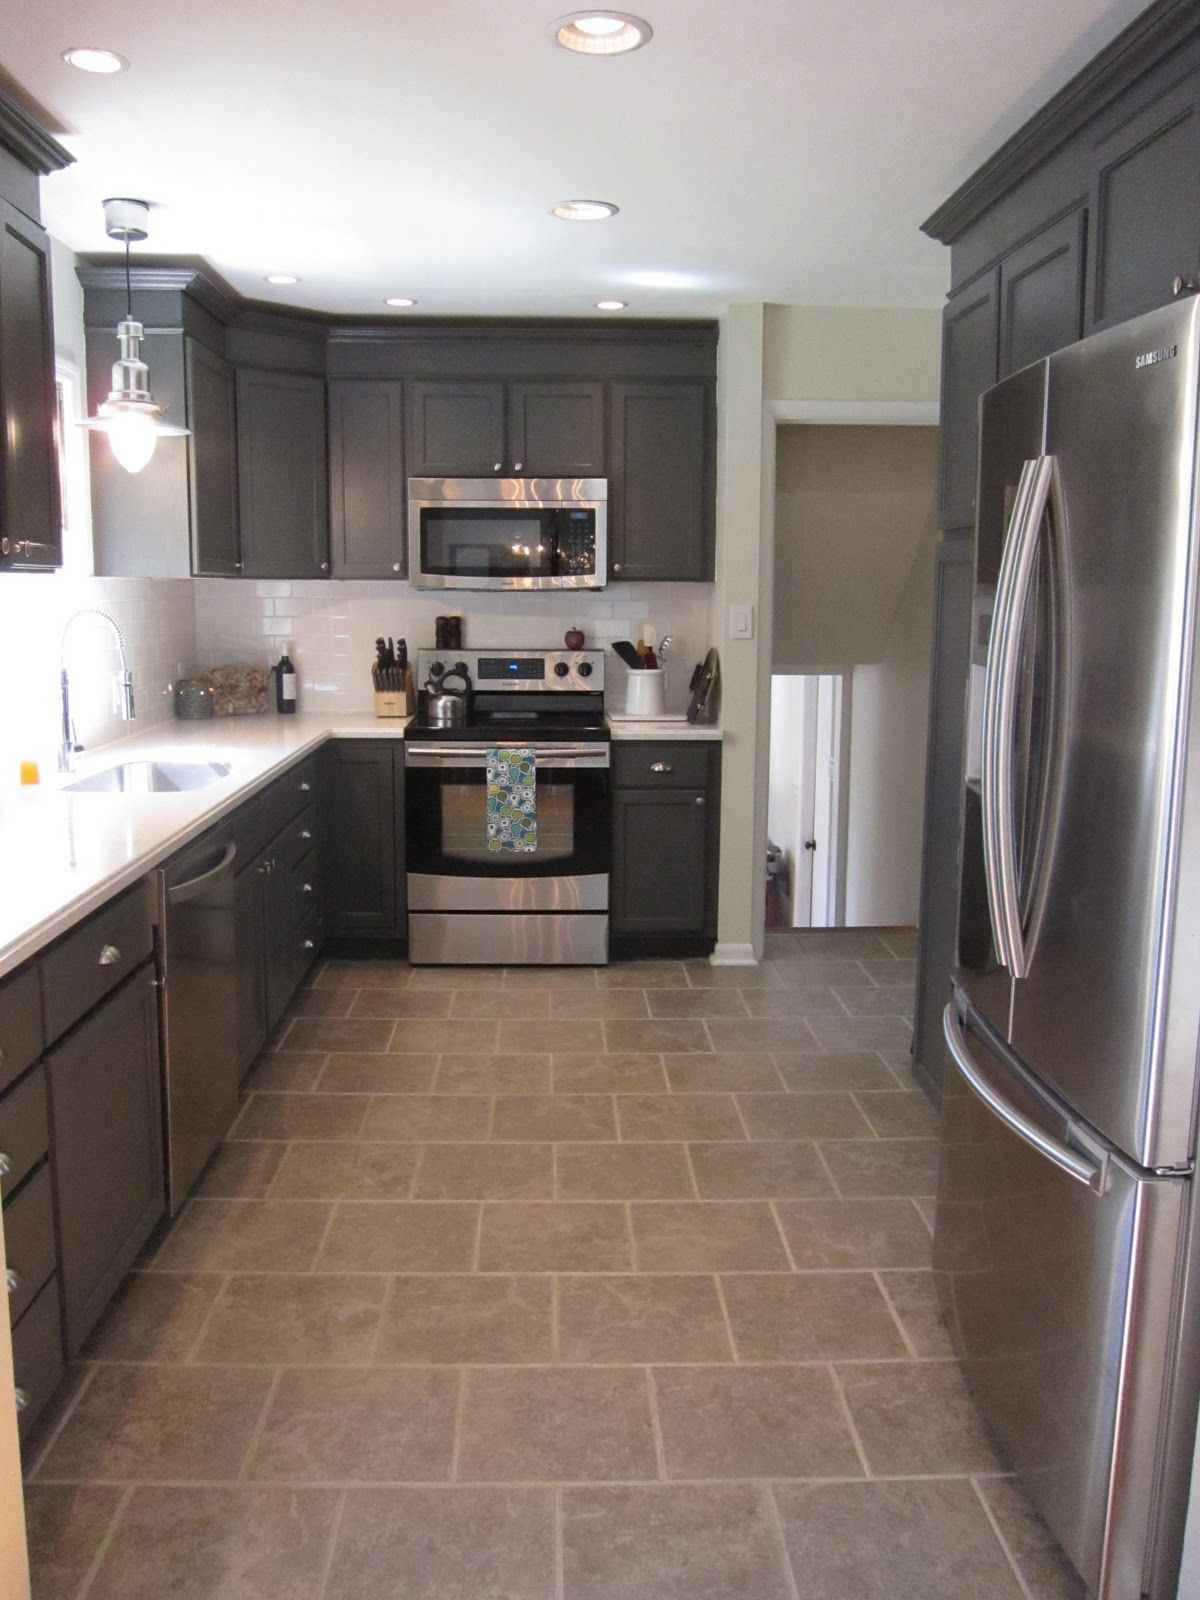 Kitchen Redo With Dark Gray Cabinets White Subway Tile – Subway Tile Colors Kitchen